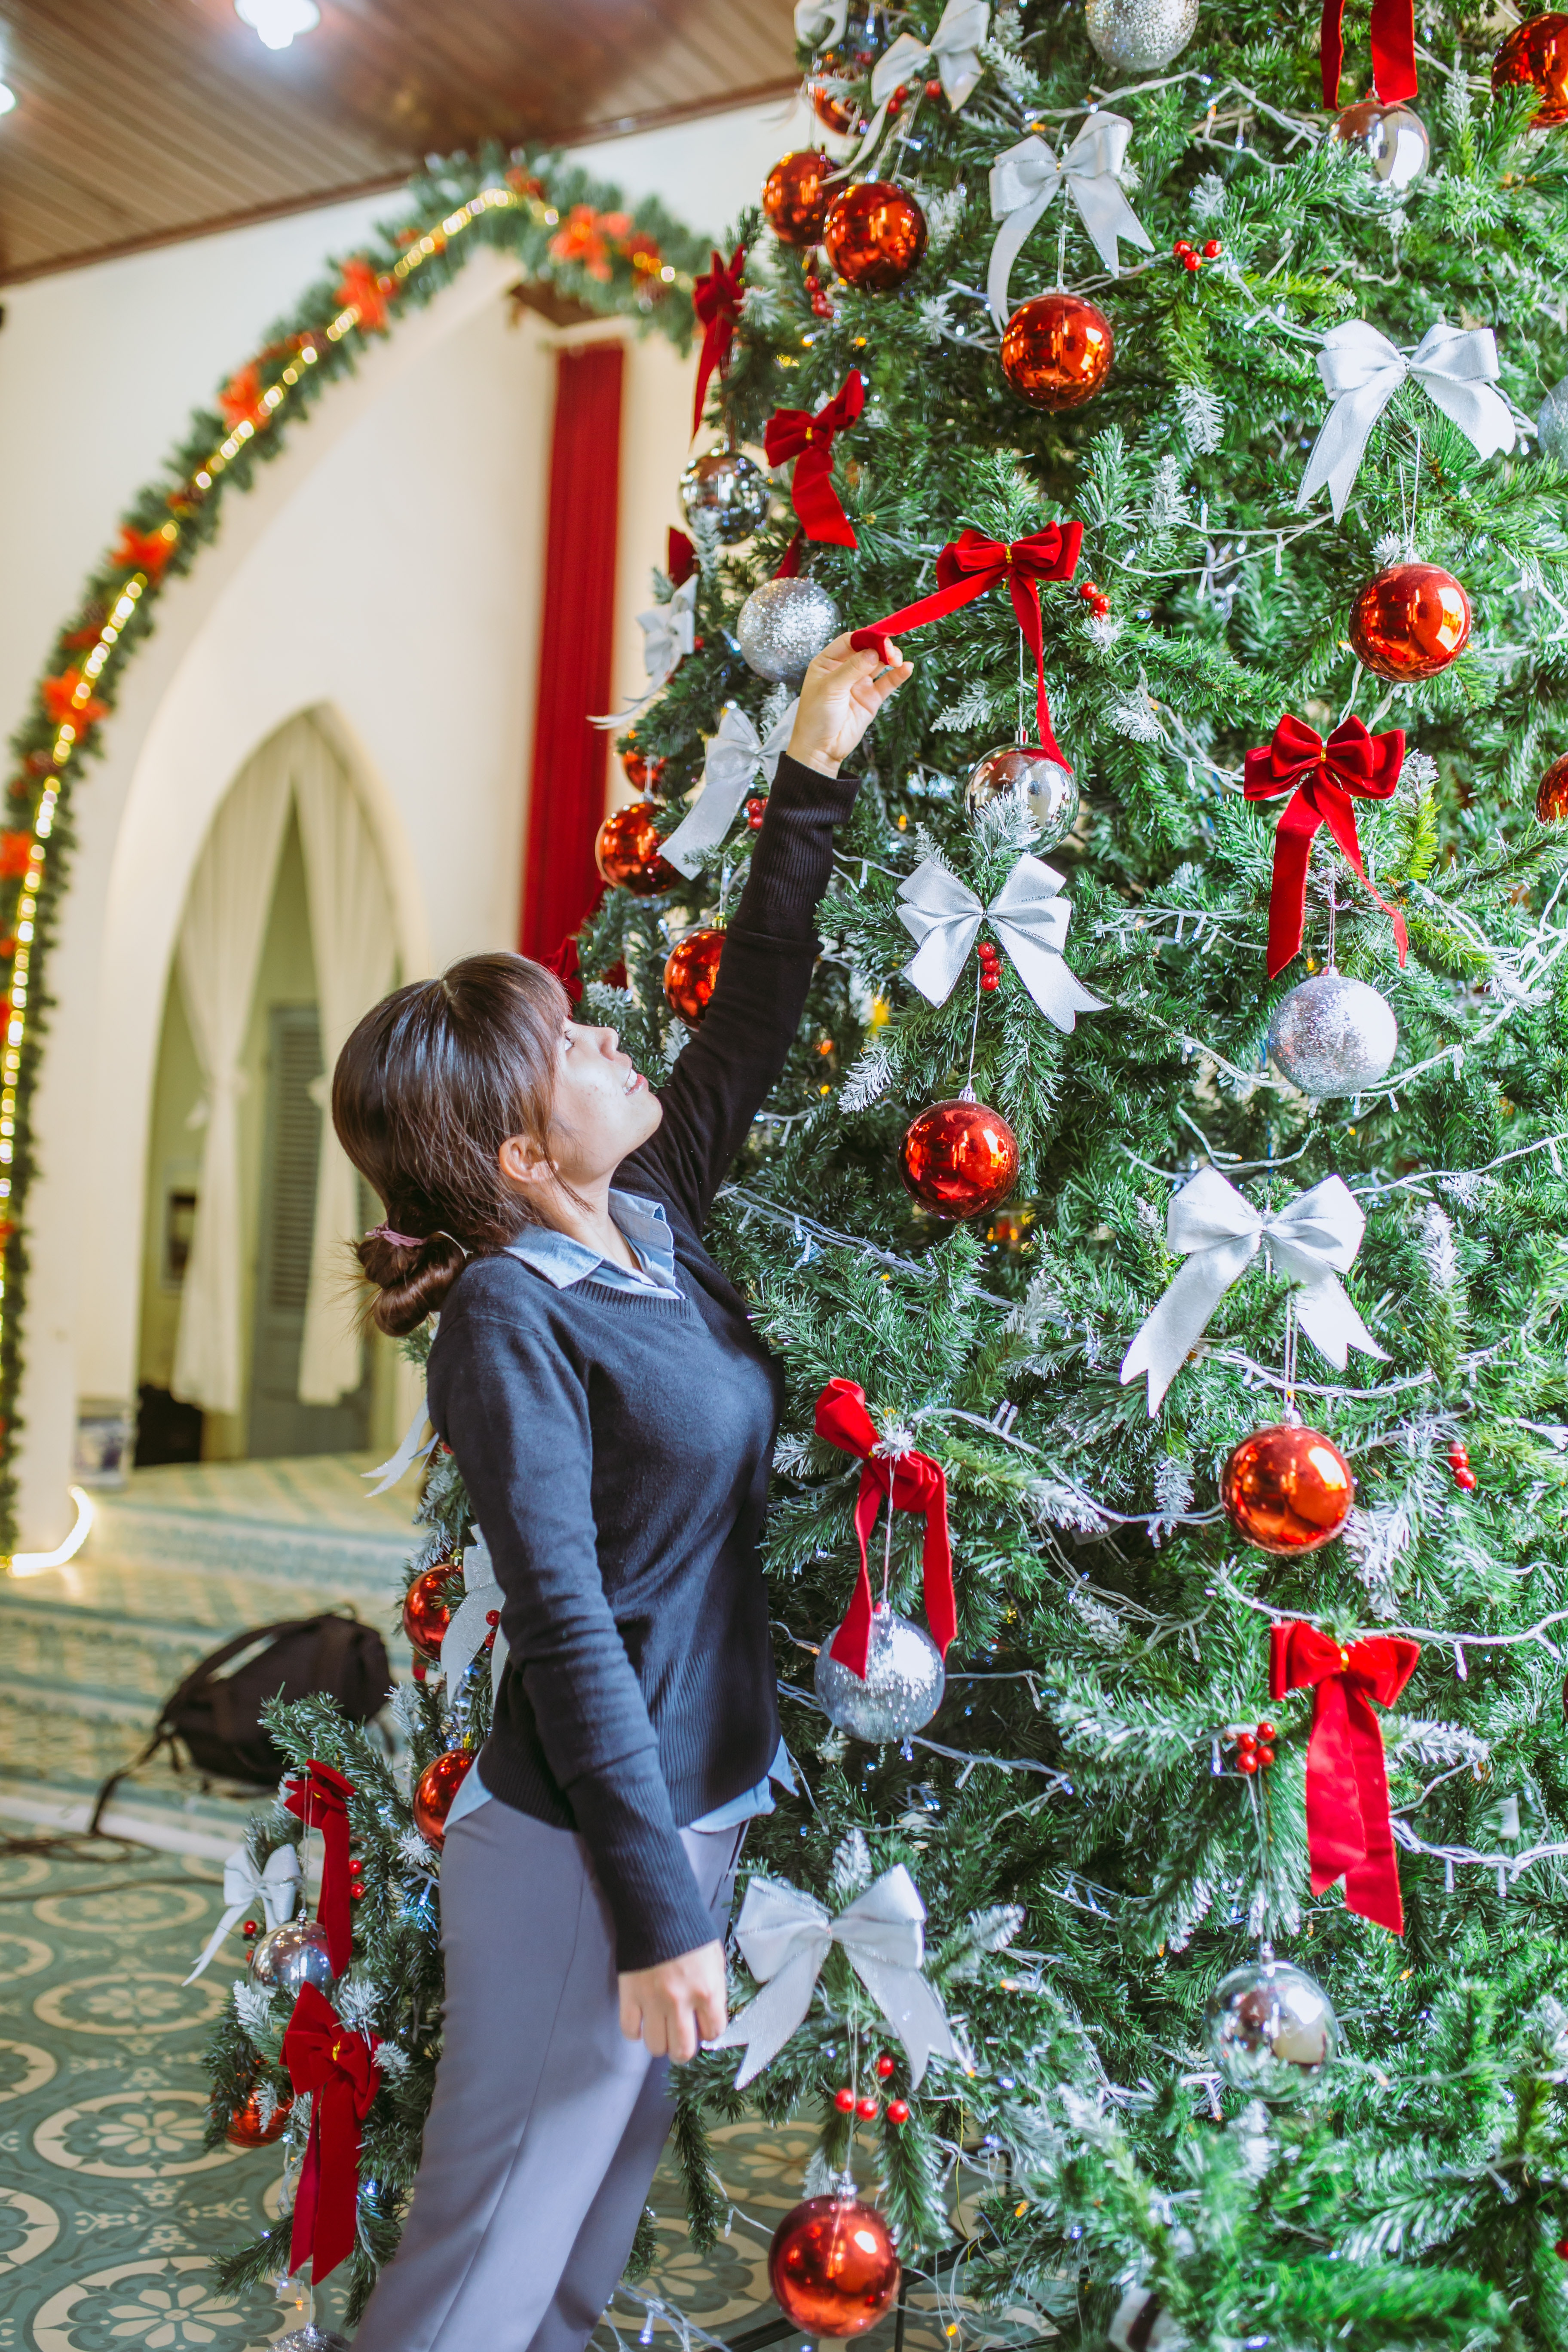 Woman Putting Ribbon Bow On Christmas Tree 183 Free Stock Photo